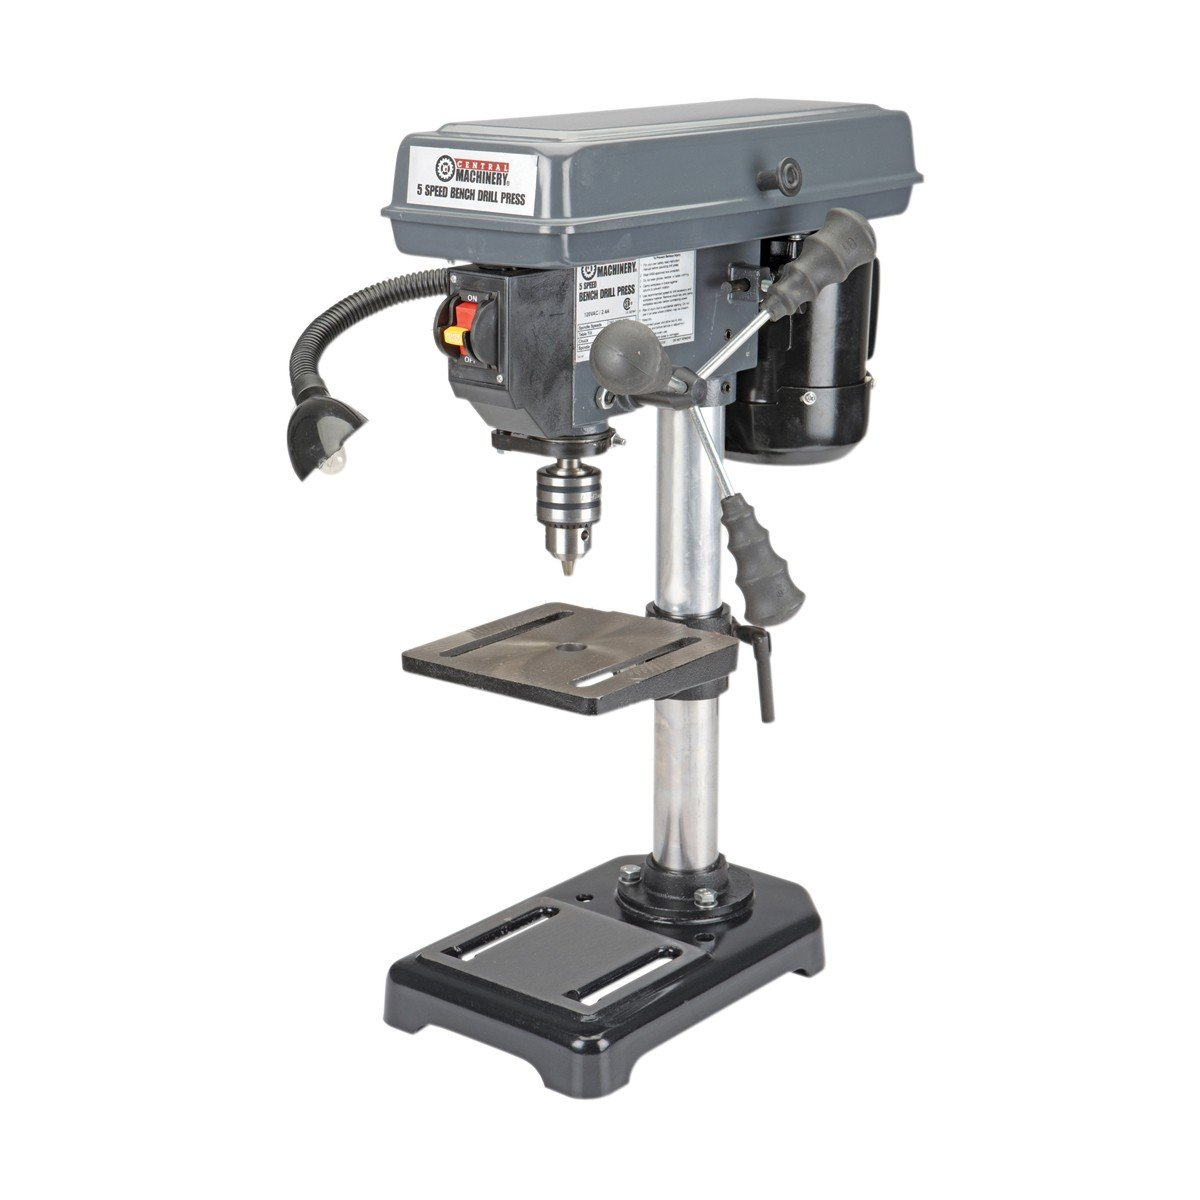 8 in. Bench Mount Drill Press, 5 Speed by Central Machinery